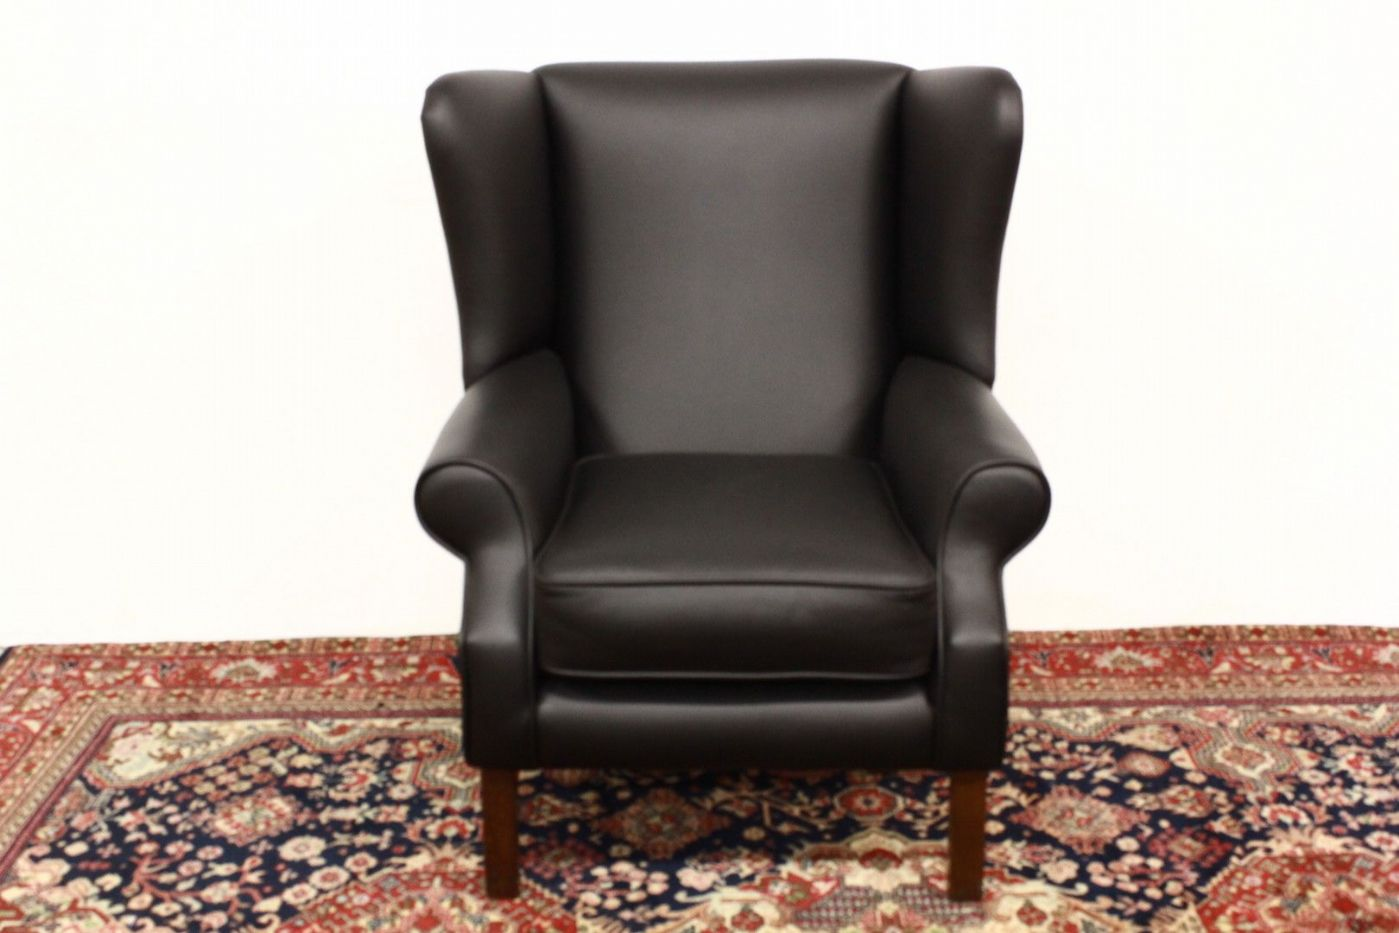 Poltrona bergere in pelle nera originale inglese english old ...